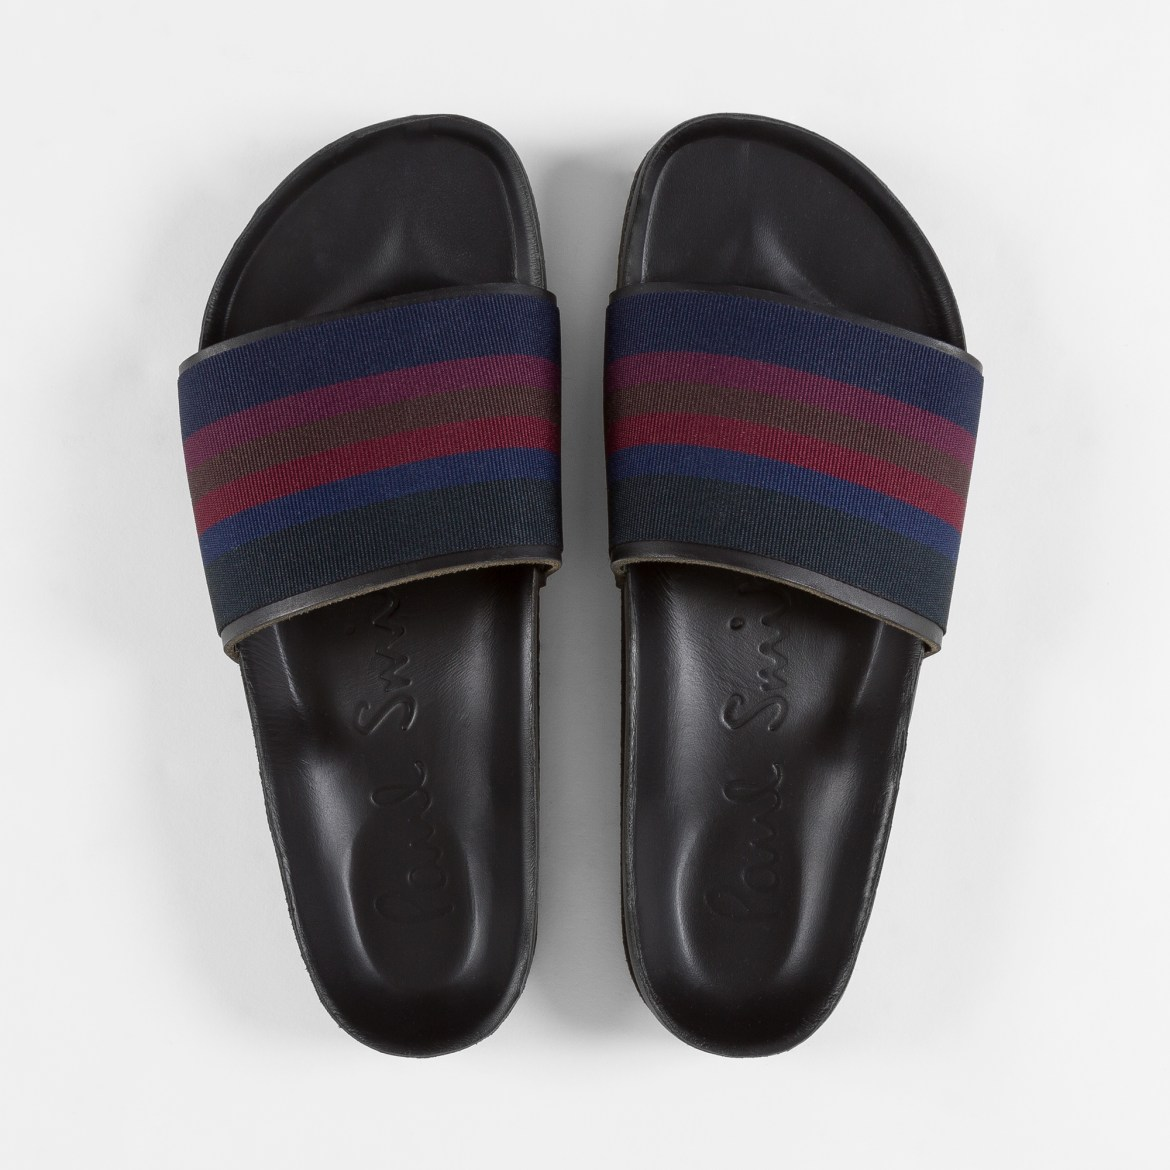 Paul Smith leather and grosgrain pool slides